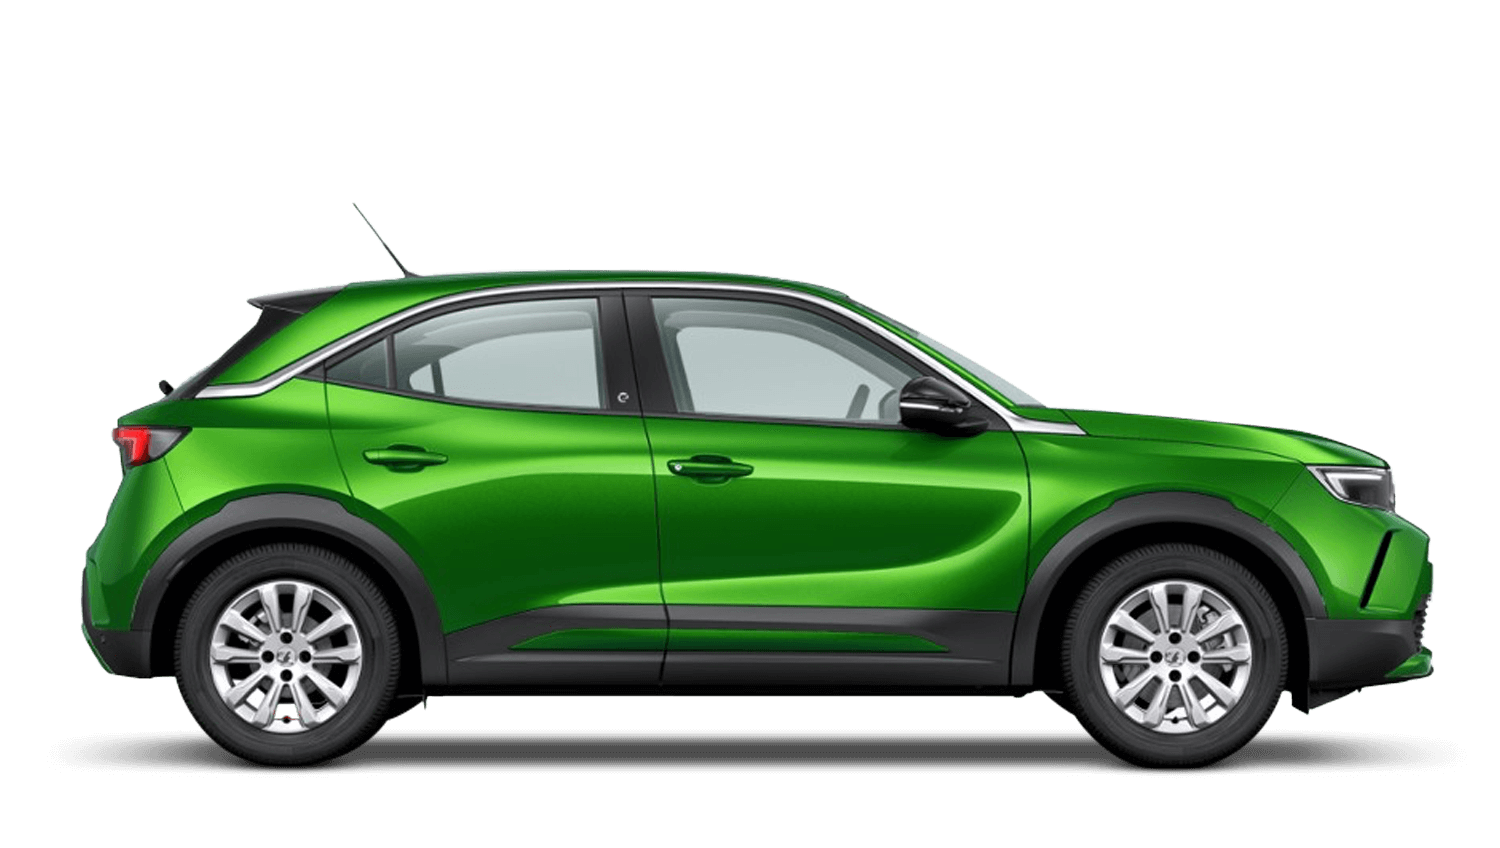 Mamba Green (Premium Metallic) All-New Vauxhall Mokka-e